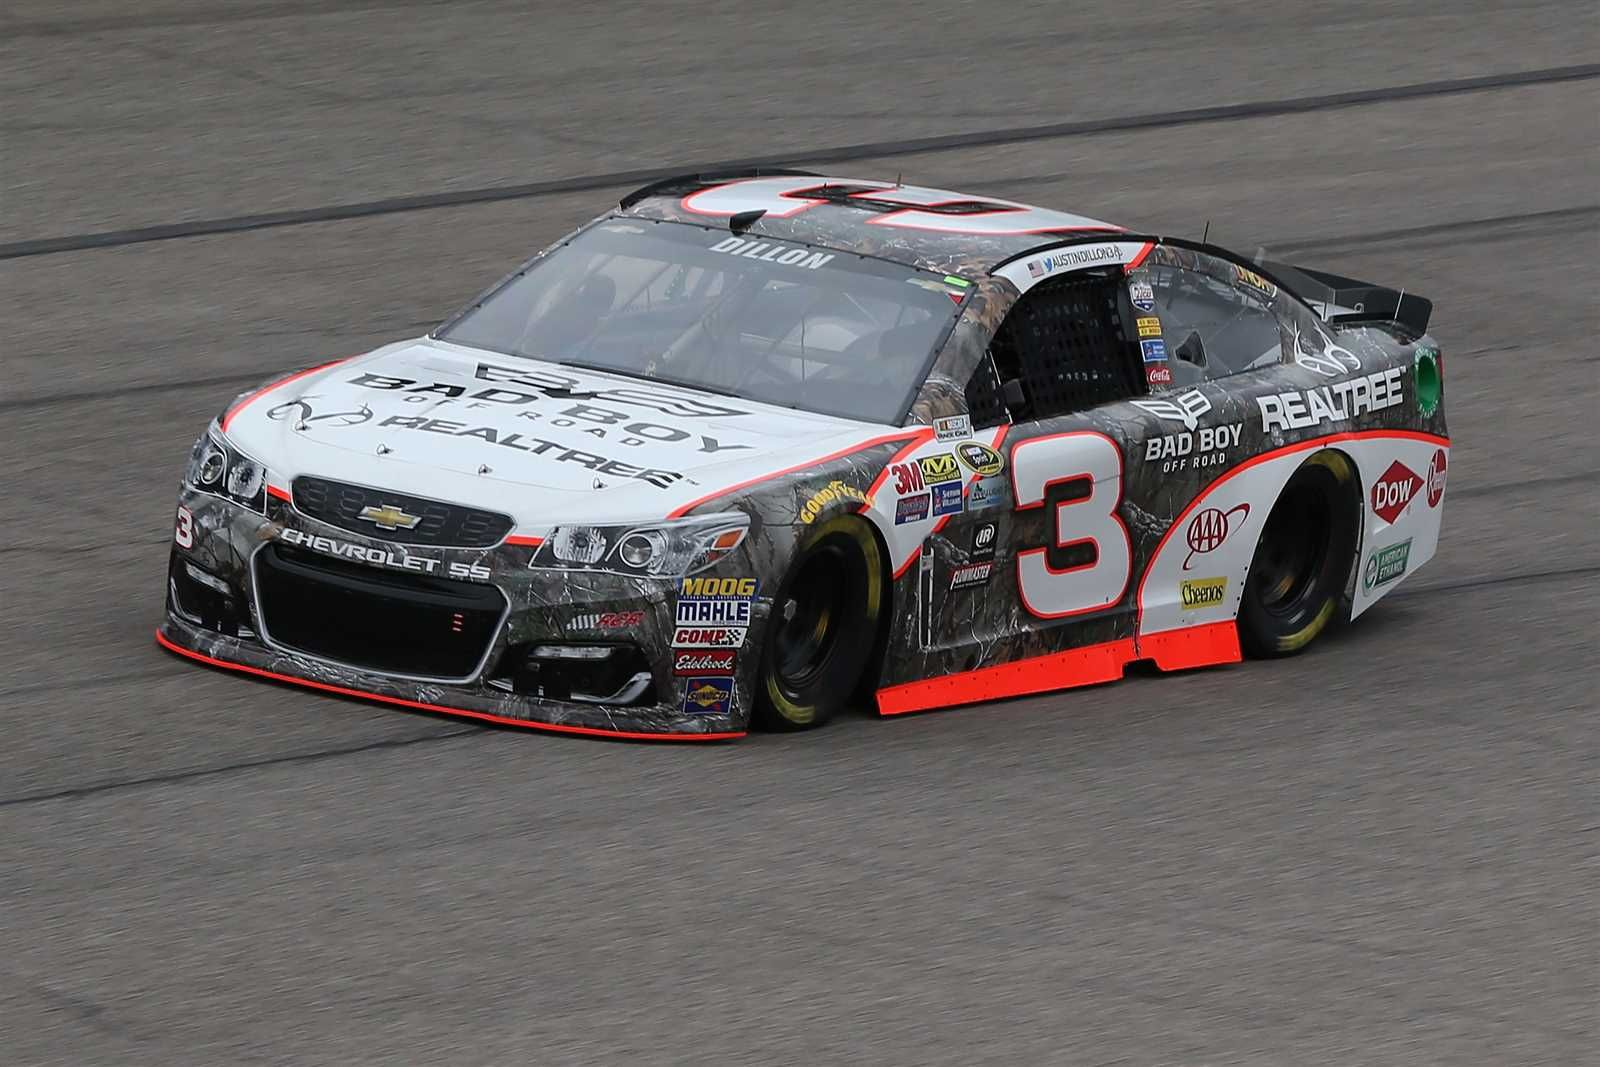 Austin dillon will start first in the no 3 richard childress racing chevrolet crew